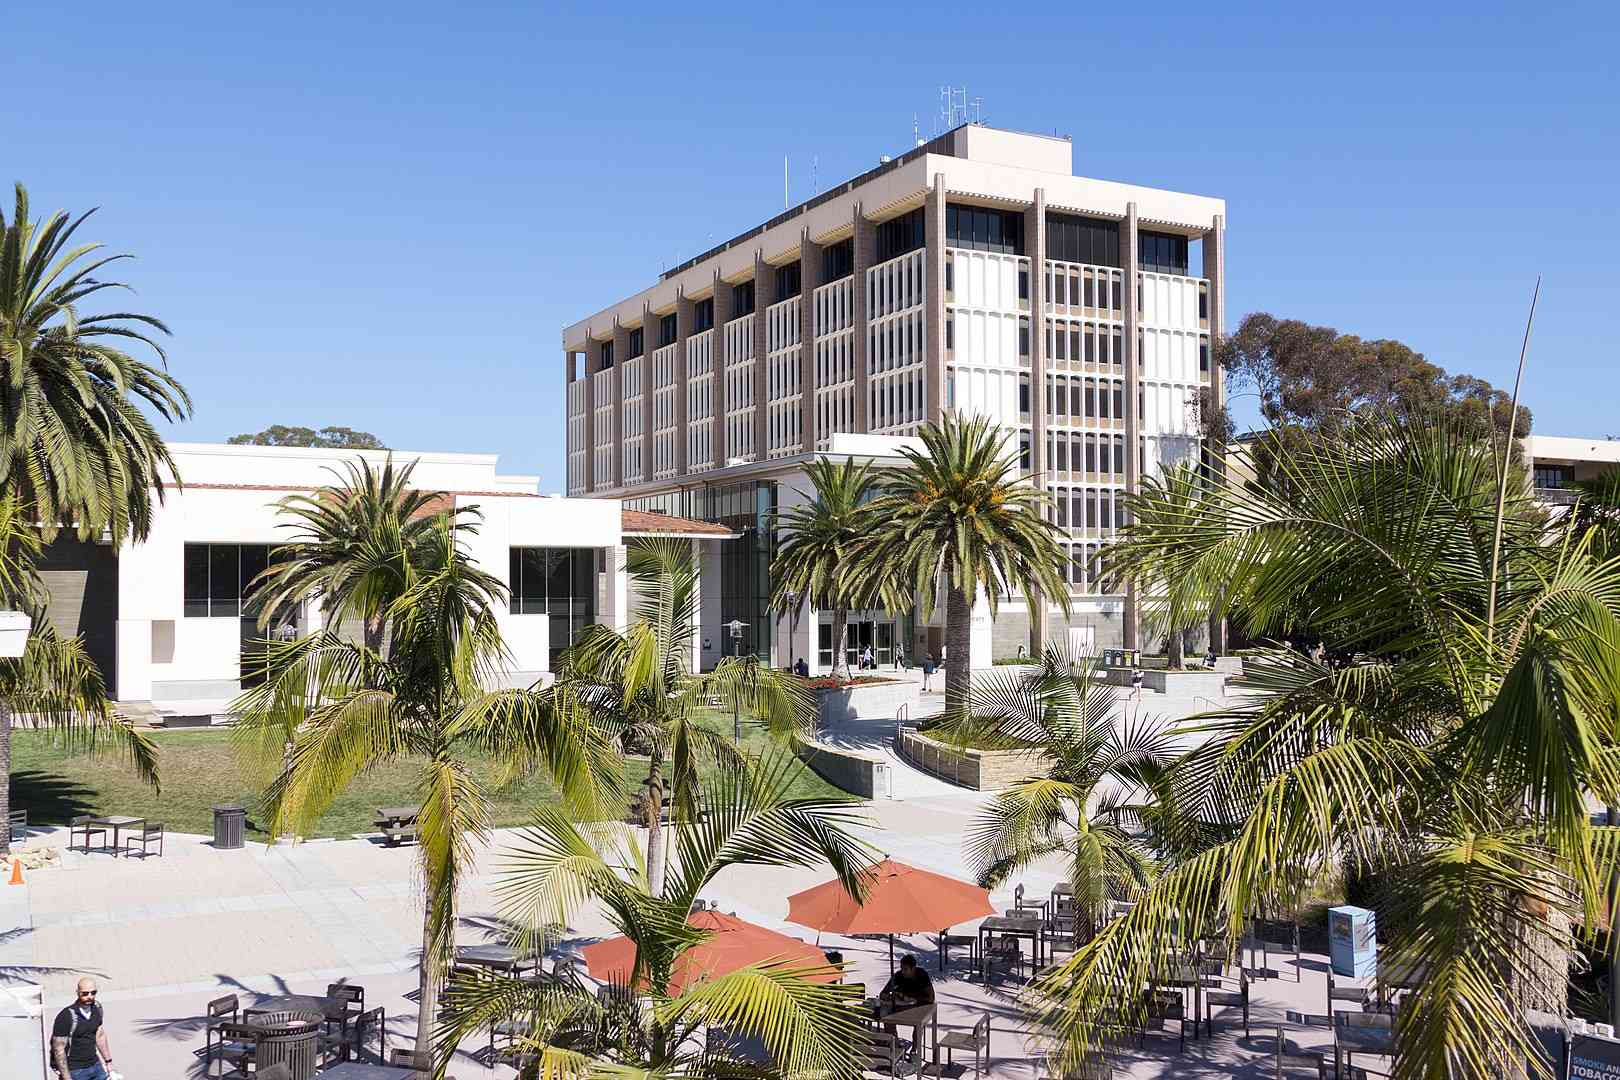 UC Santa Barbara Library on a sunny day under a perfect blue sky with a view of the beach.